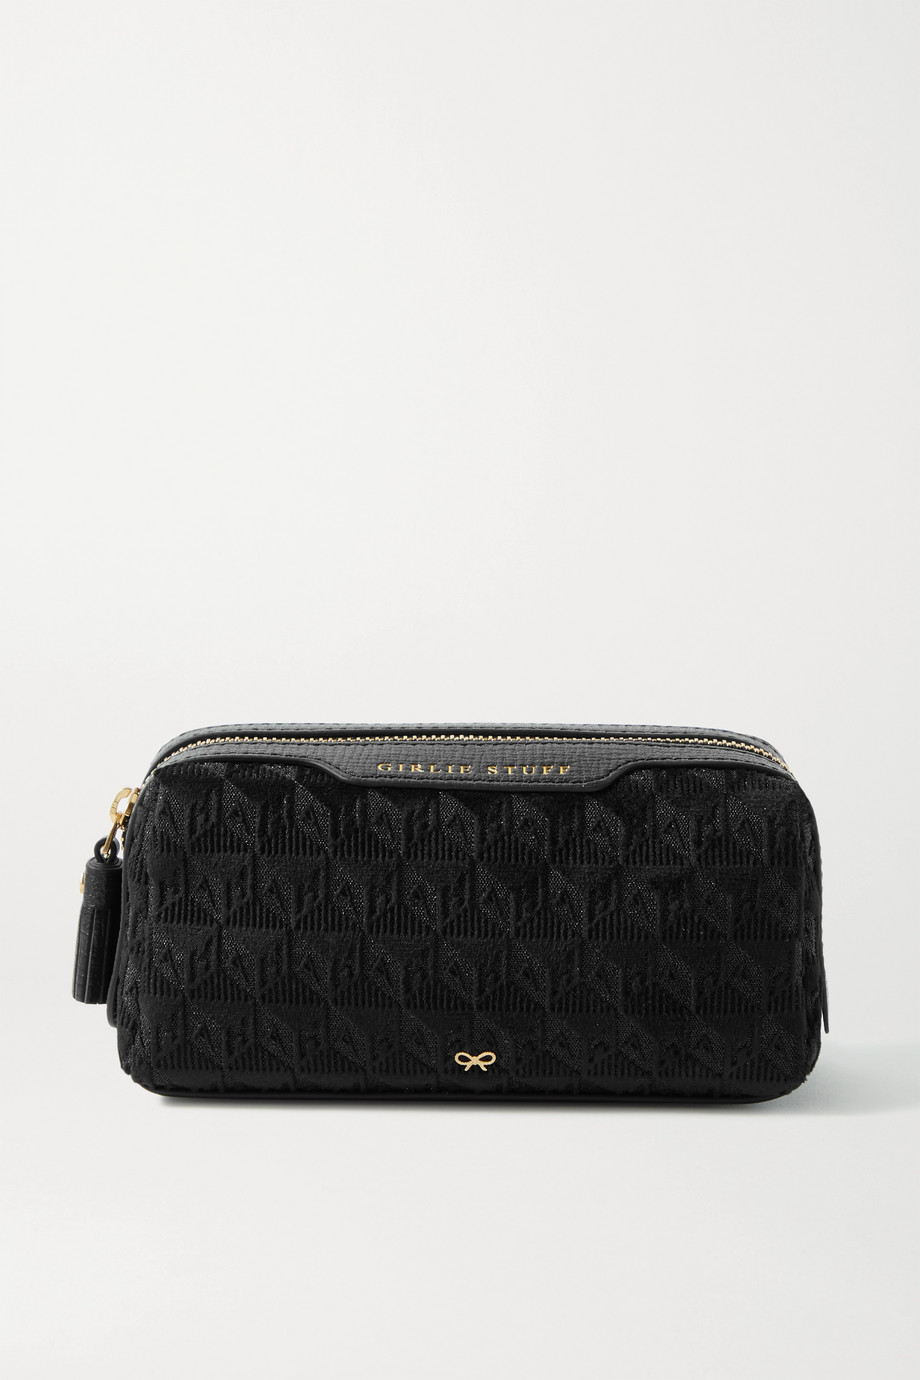 ANYA HINDMARCH Girlie Stuff leather-trimmed velvet-jacquard pouch